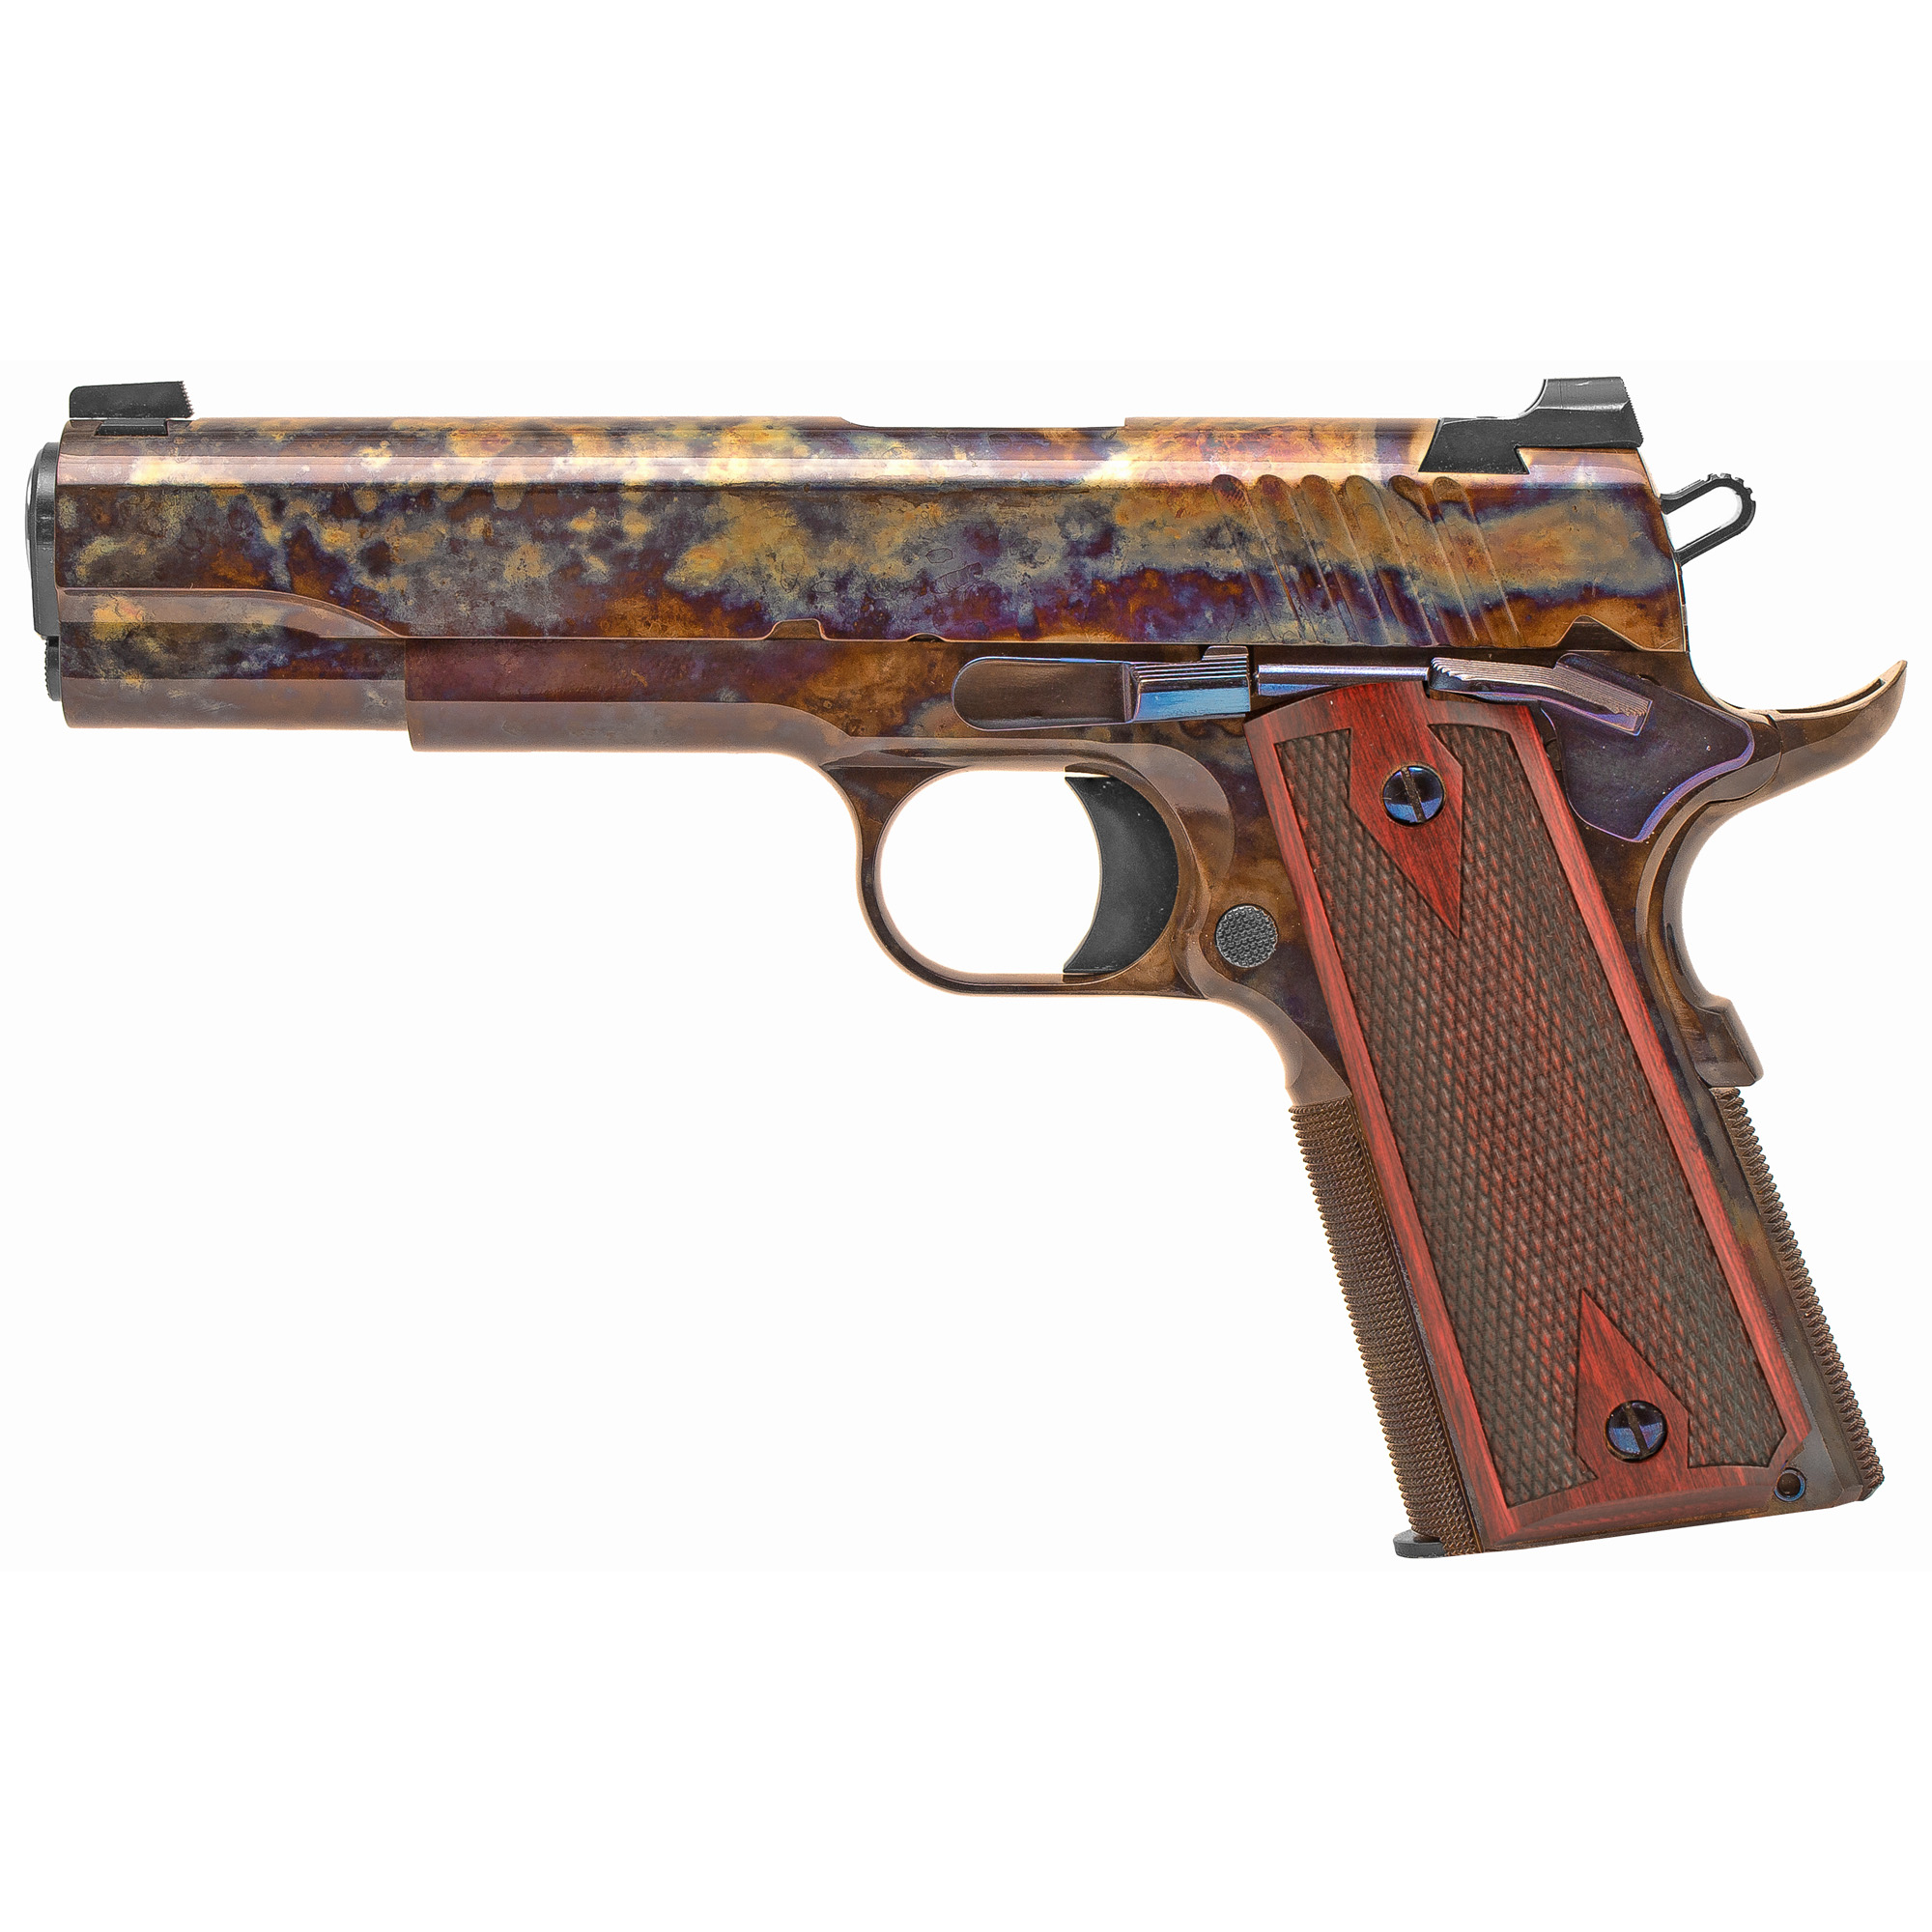 The Standard Manufacturing 1911 is the pinnacle of the gun making art. This model with its case colored finish is like no other 1911 available anywhere and at any price. To obtain this finish all metal surfaces must be meticulously prepared by our expert craftsman with many labor intensive hours of hand polishing and stoning. No other manufacturer that we know of is capable of producing this level of finish. At all stages of manufacturing this gun we employ the same fundamental principles. All of the metal to metal fits are as perfect as can be performed by the most skilled gunsmith.